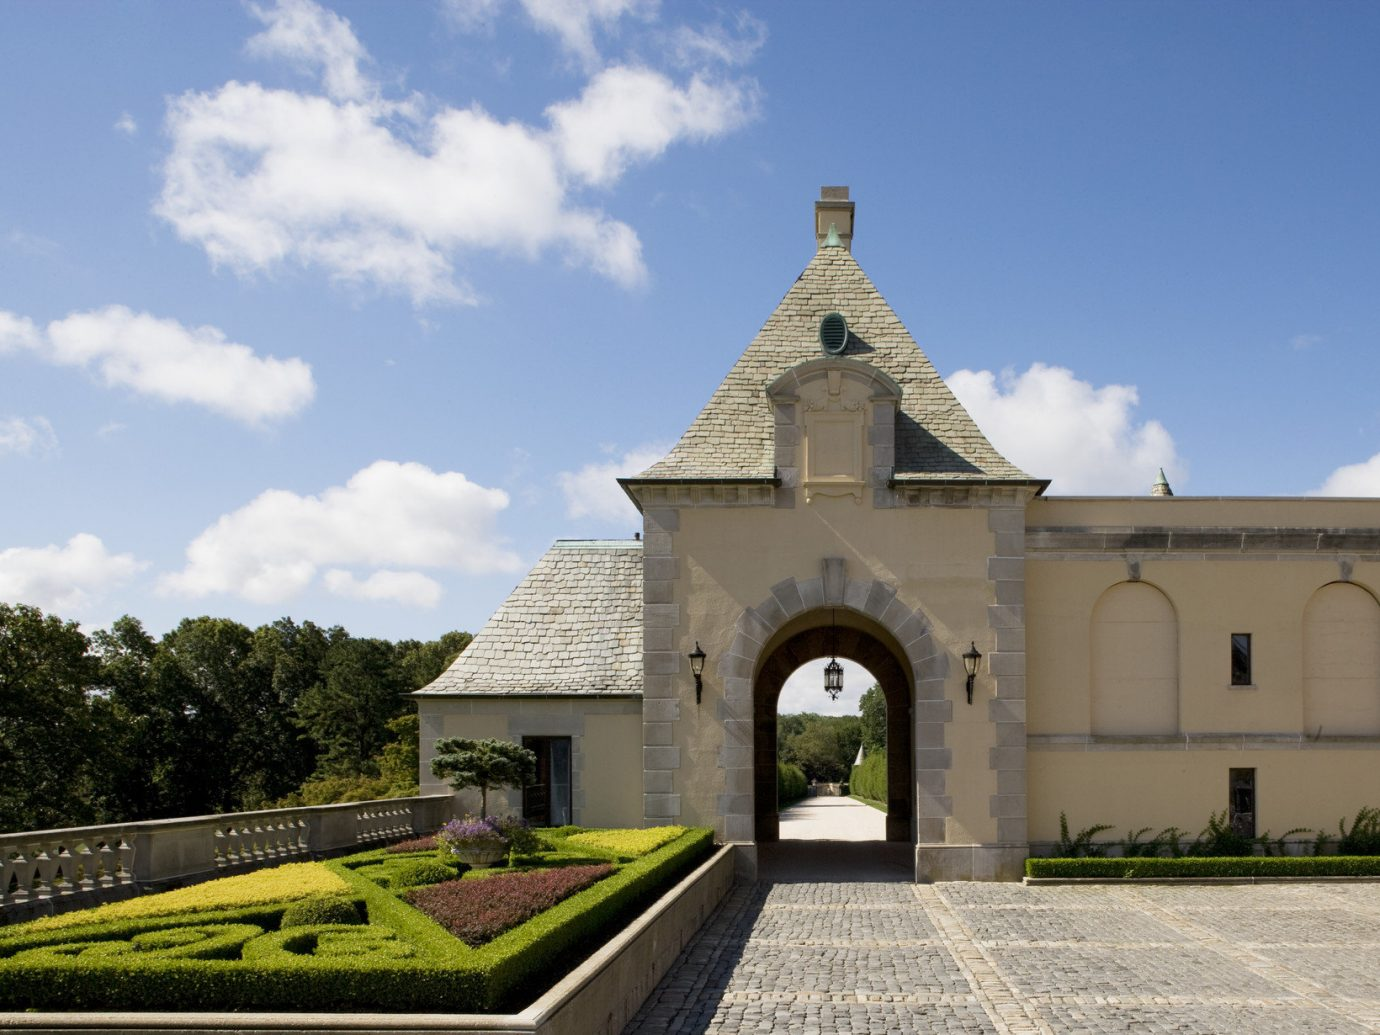 Architecture building Courtyard Design Exterior flowers Garden Greenery Luxury Nature park remote Style + Design trees Trip Ideas sky outdoor landmark estate place of worship Church monastery chapel spanish missions in california château stone